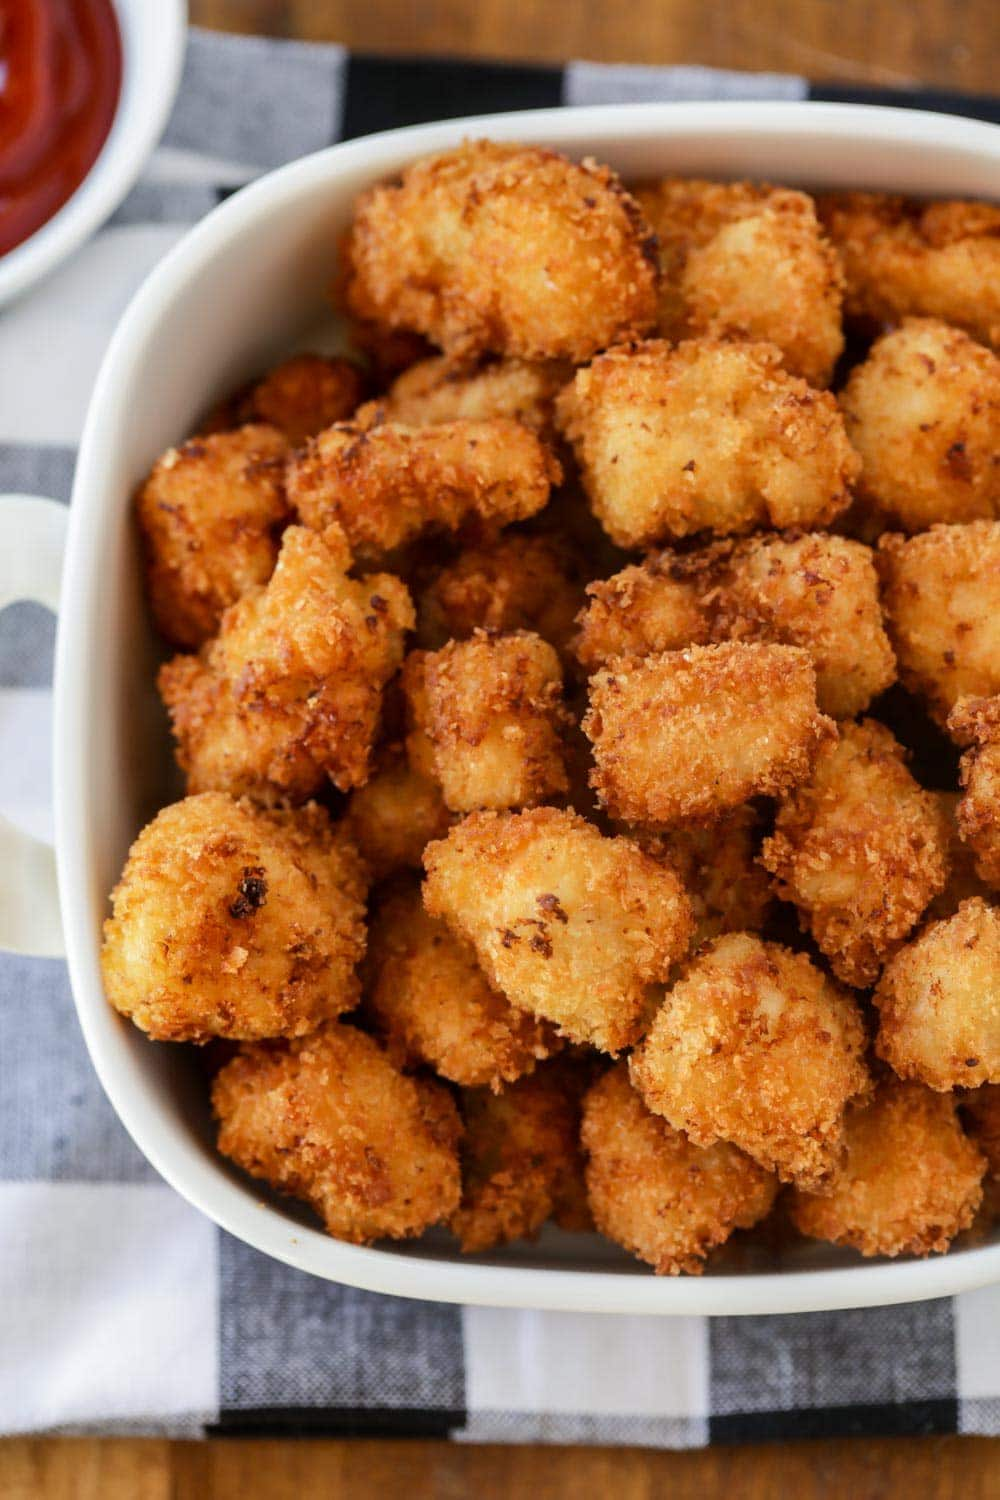 Popcorn chicken recipe in dish